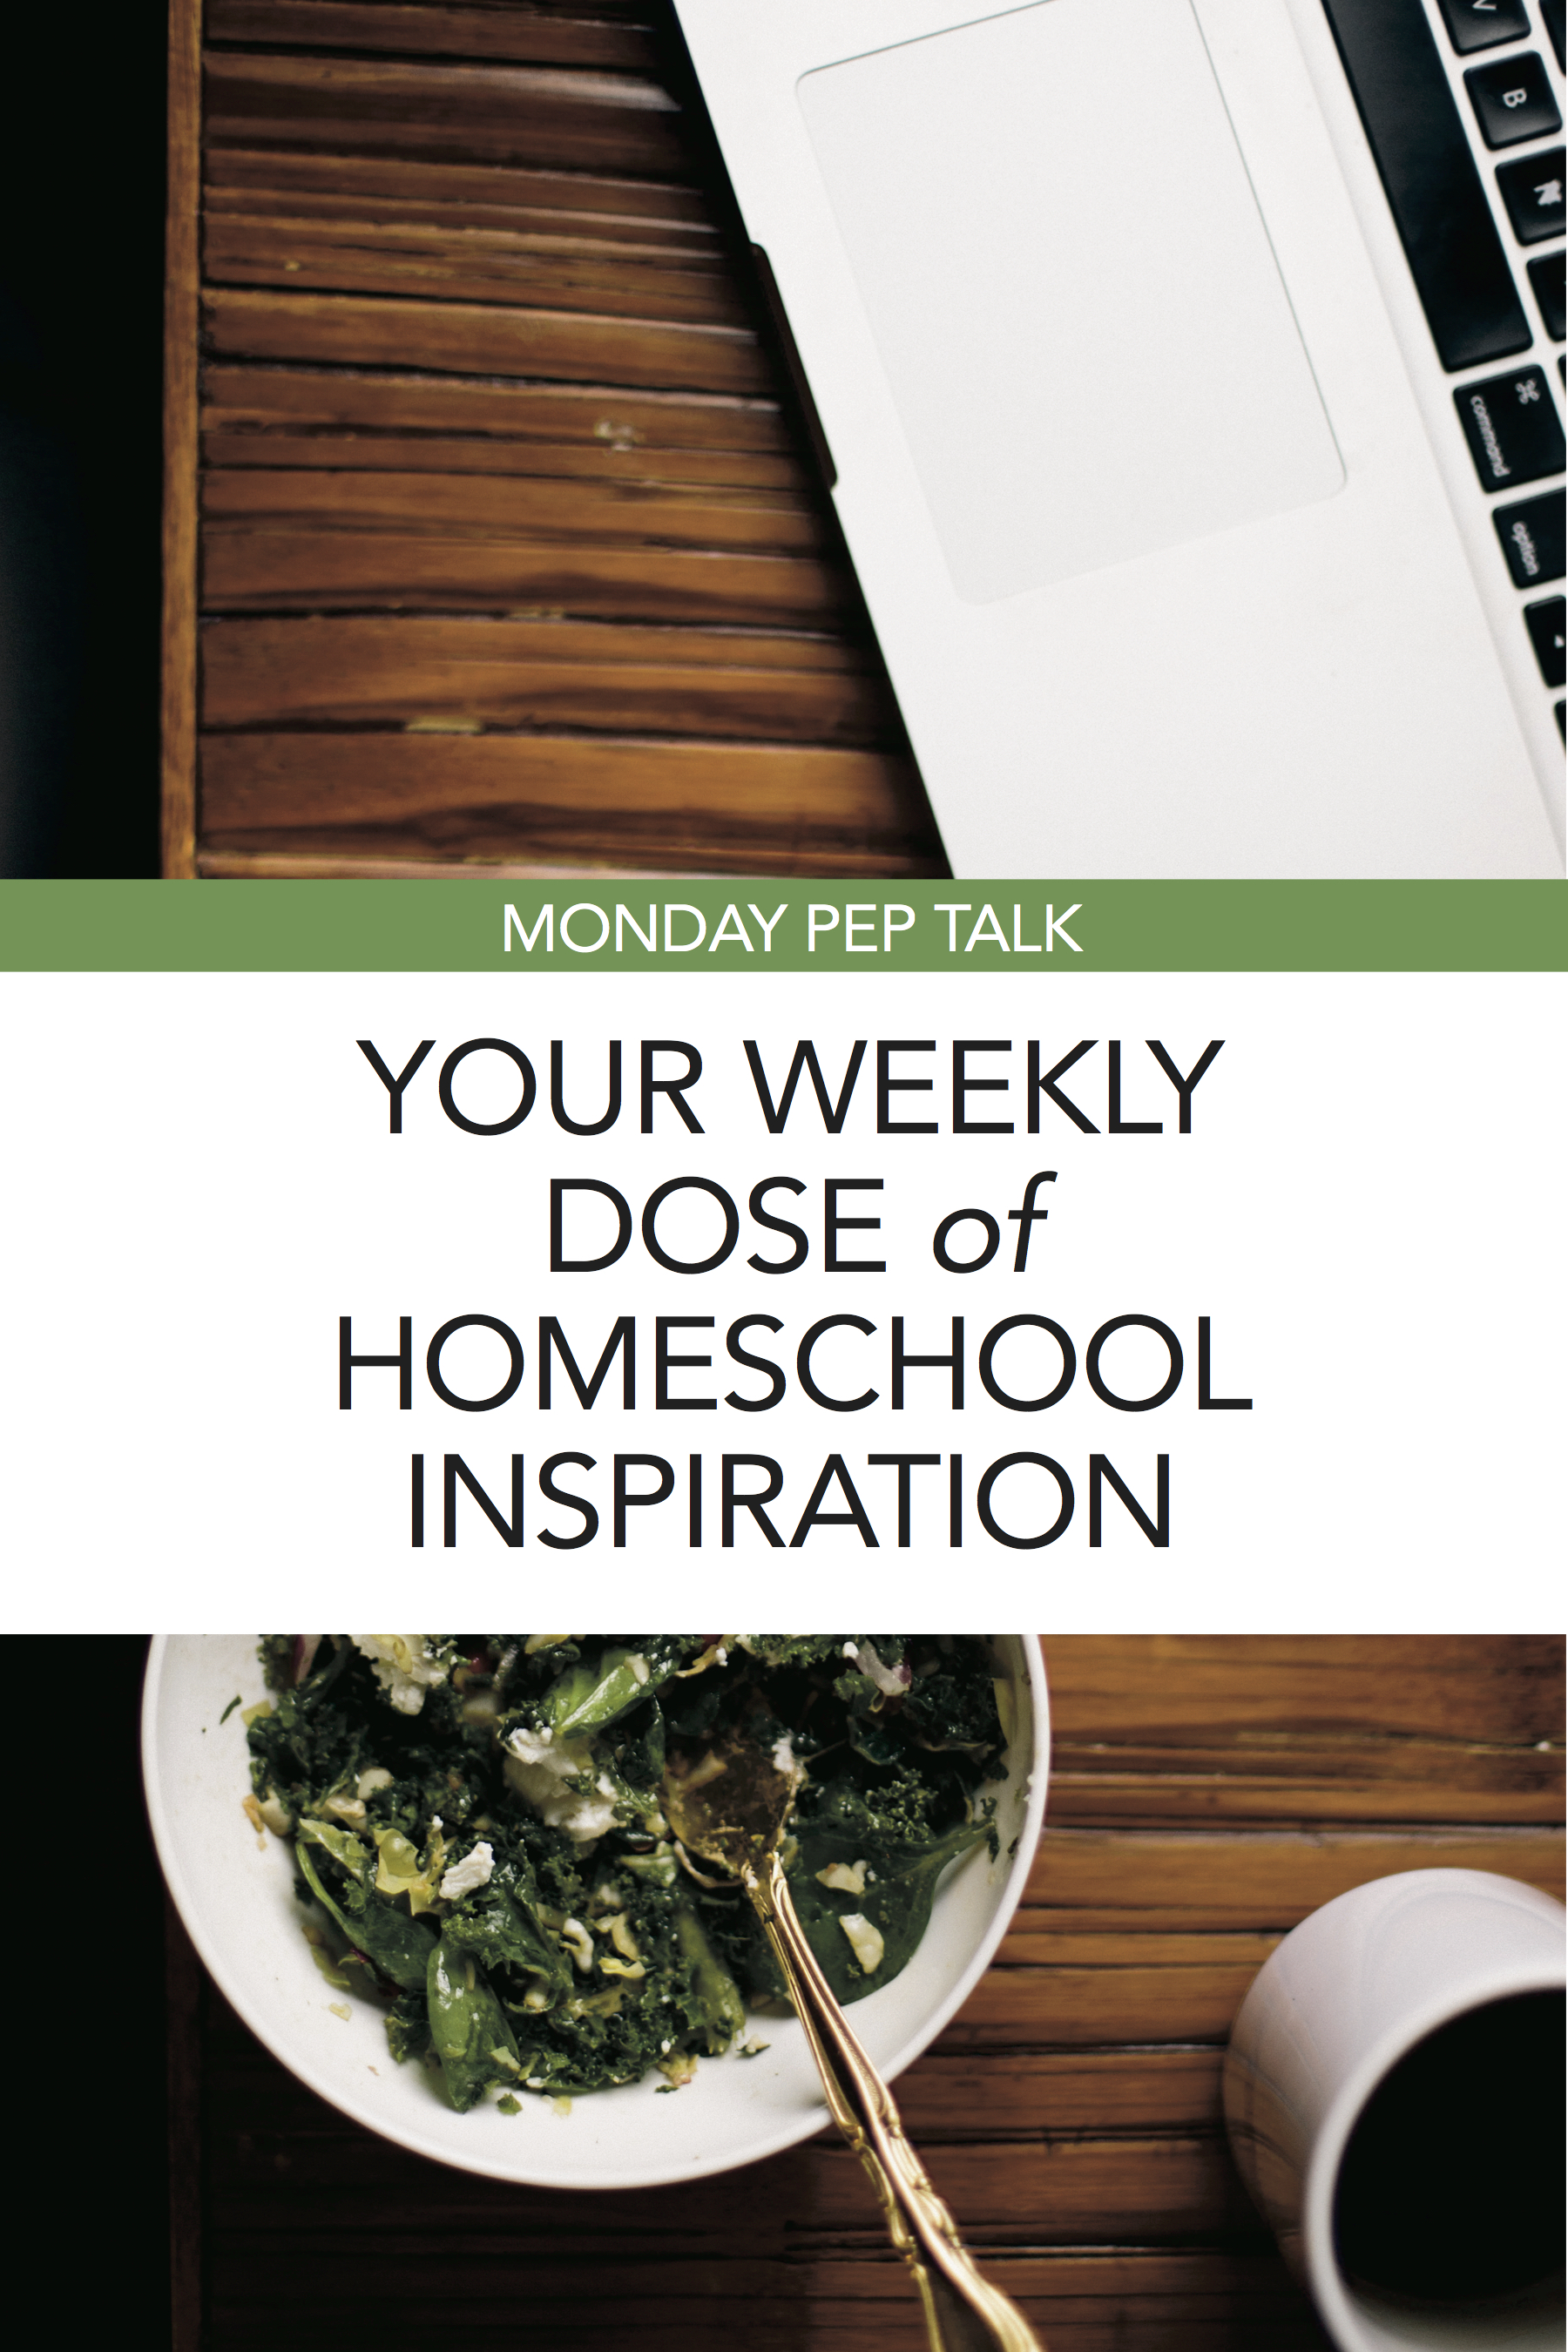 Our Monday Pep Talk is going away, but you can sign up for our newsletter pep talk to keep getting your regular dose of homeschool inspiration!